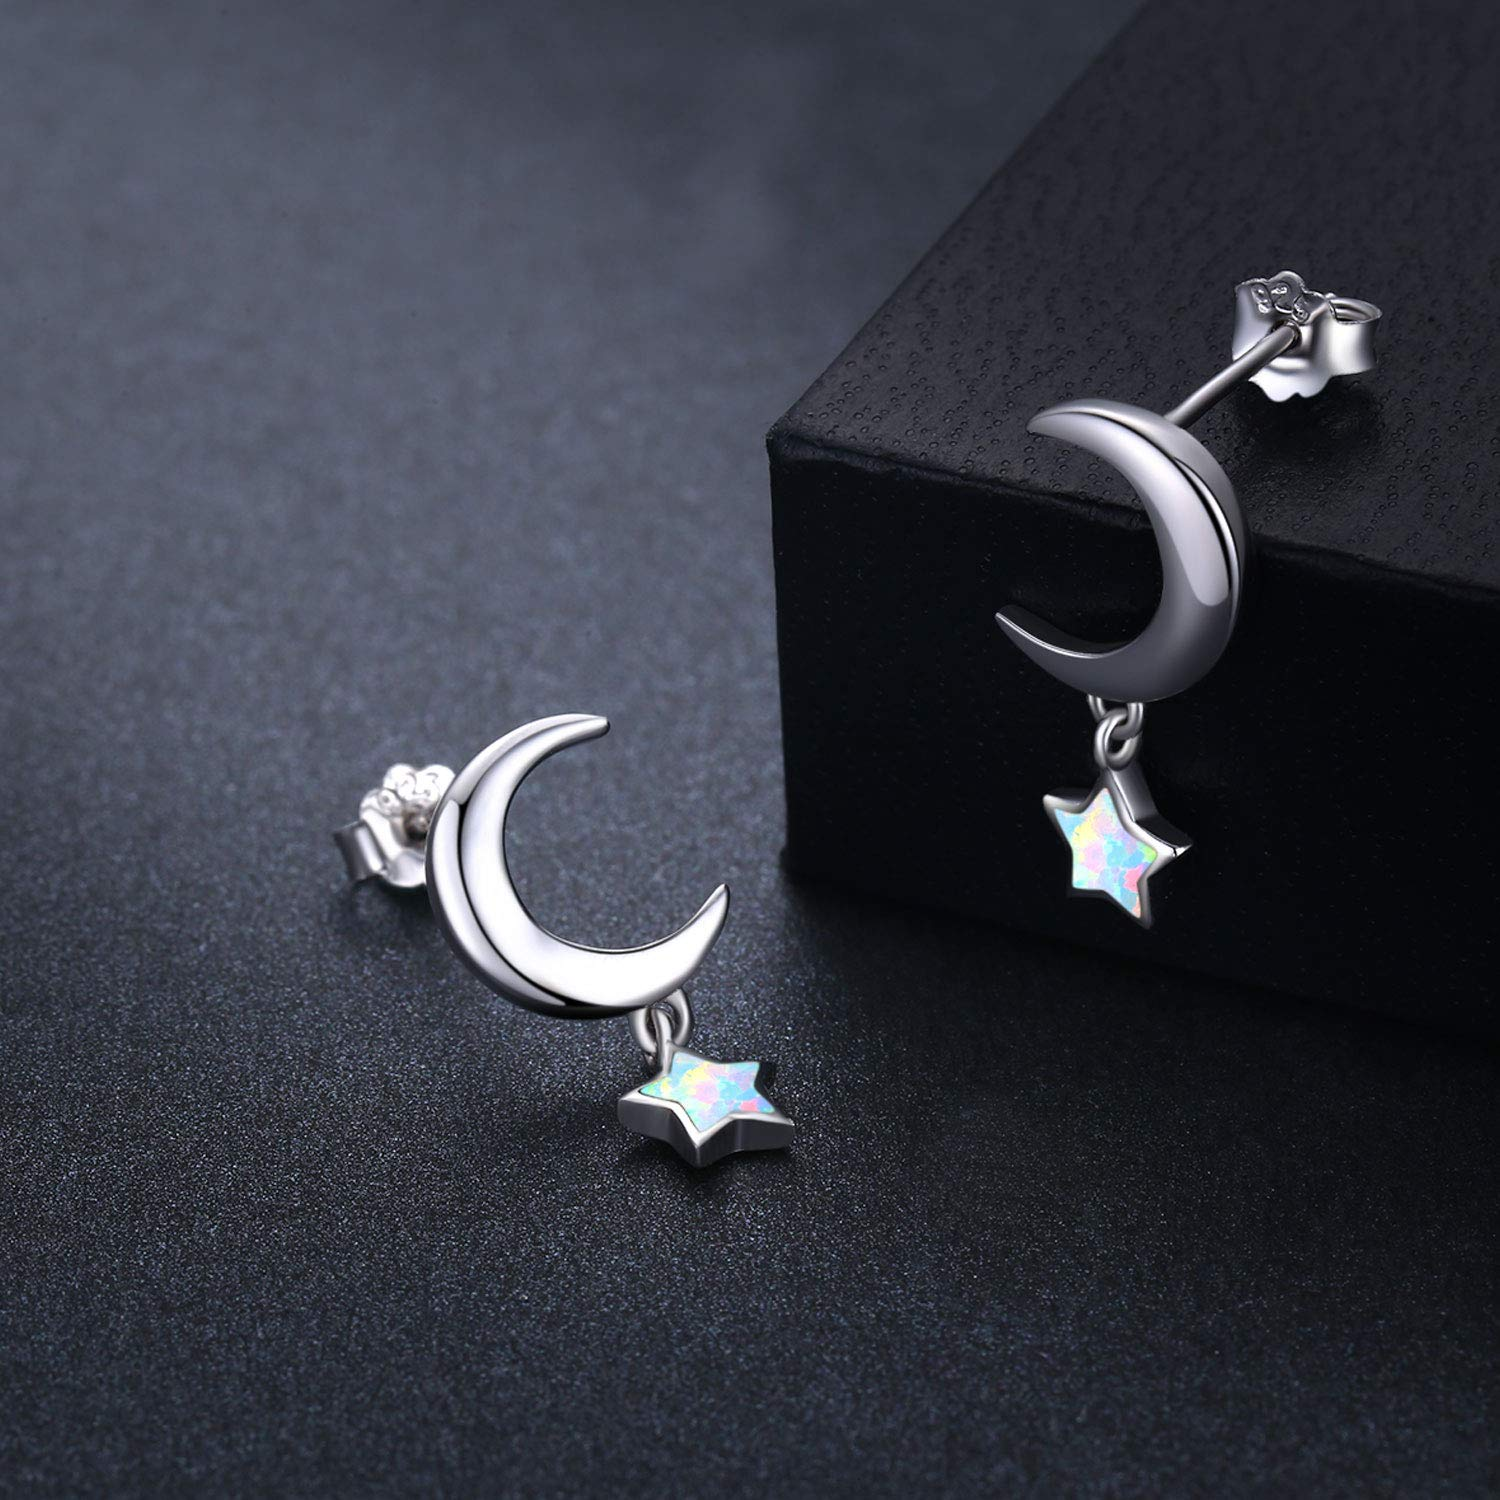 Sterling Silver Nose Stud Opal Star Star Earrings Star Necklace for Women 20 Gauge Nostril Ring Nose Body Piercing Jewelry Gifts